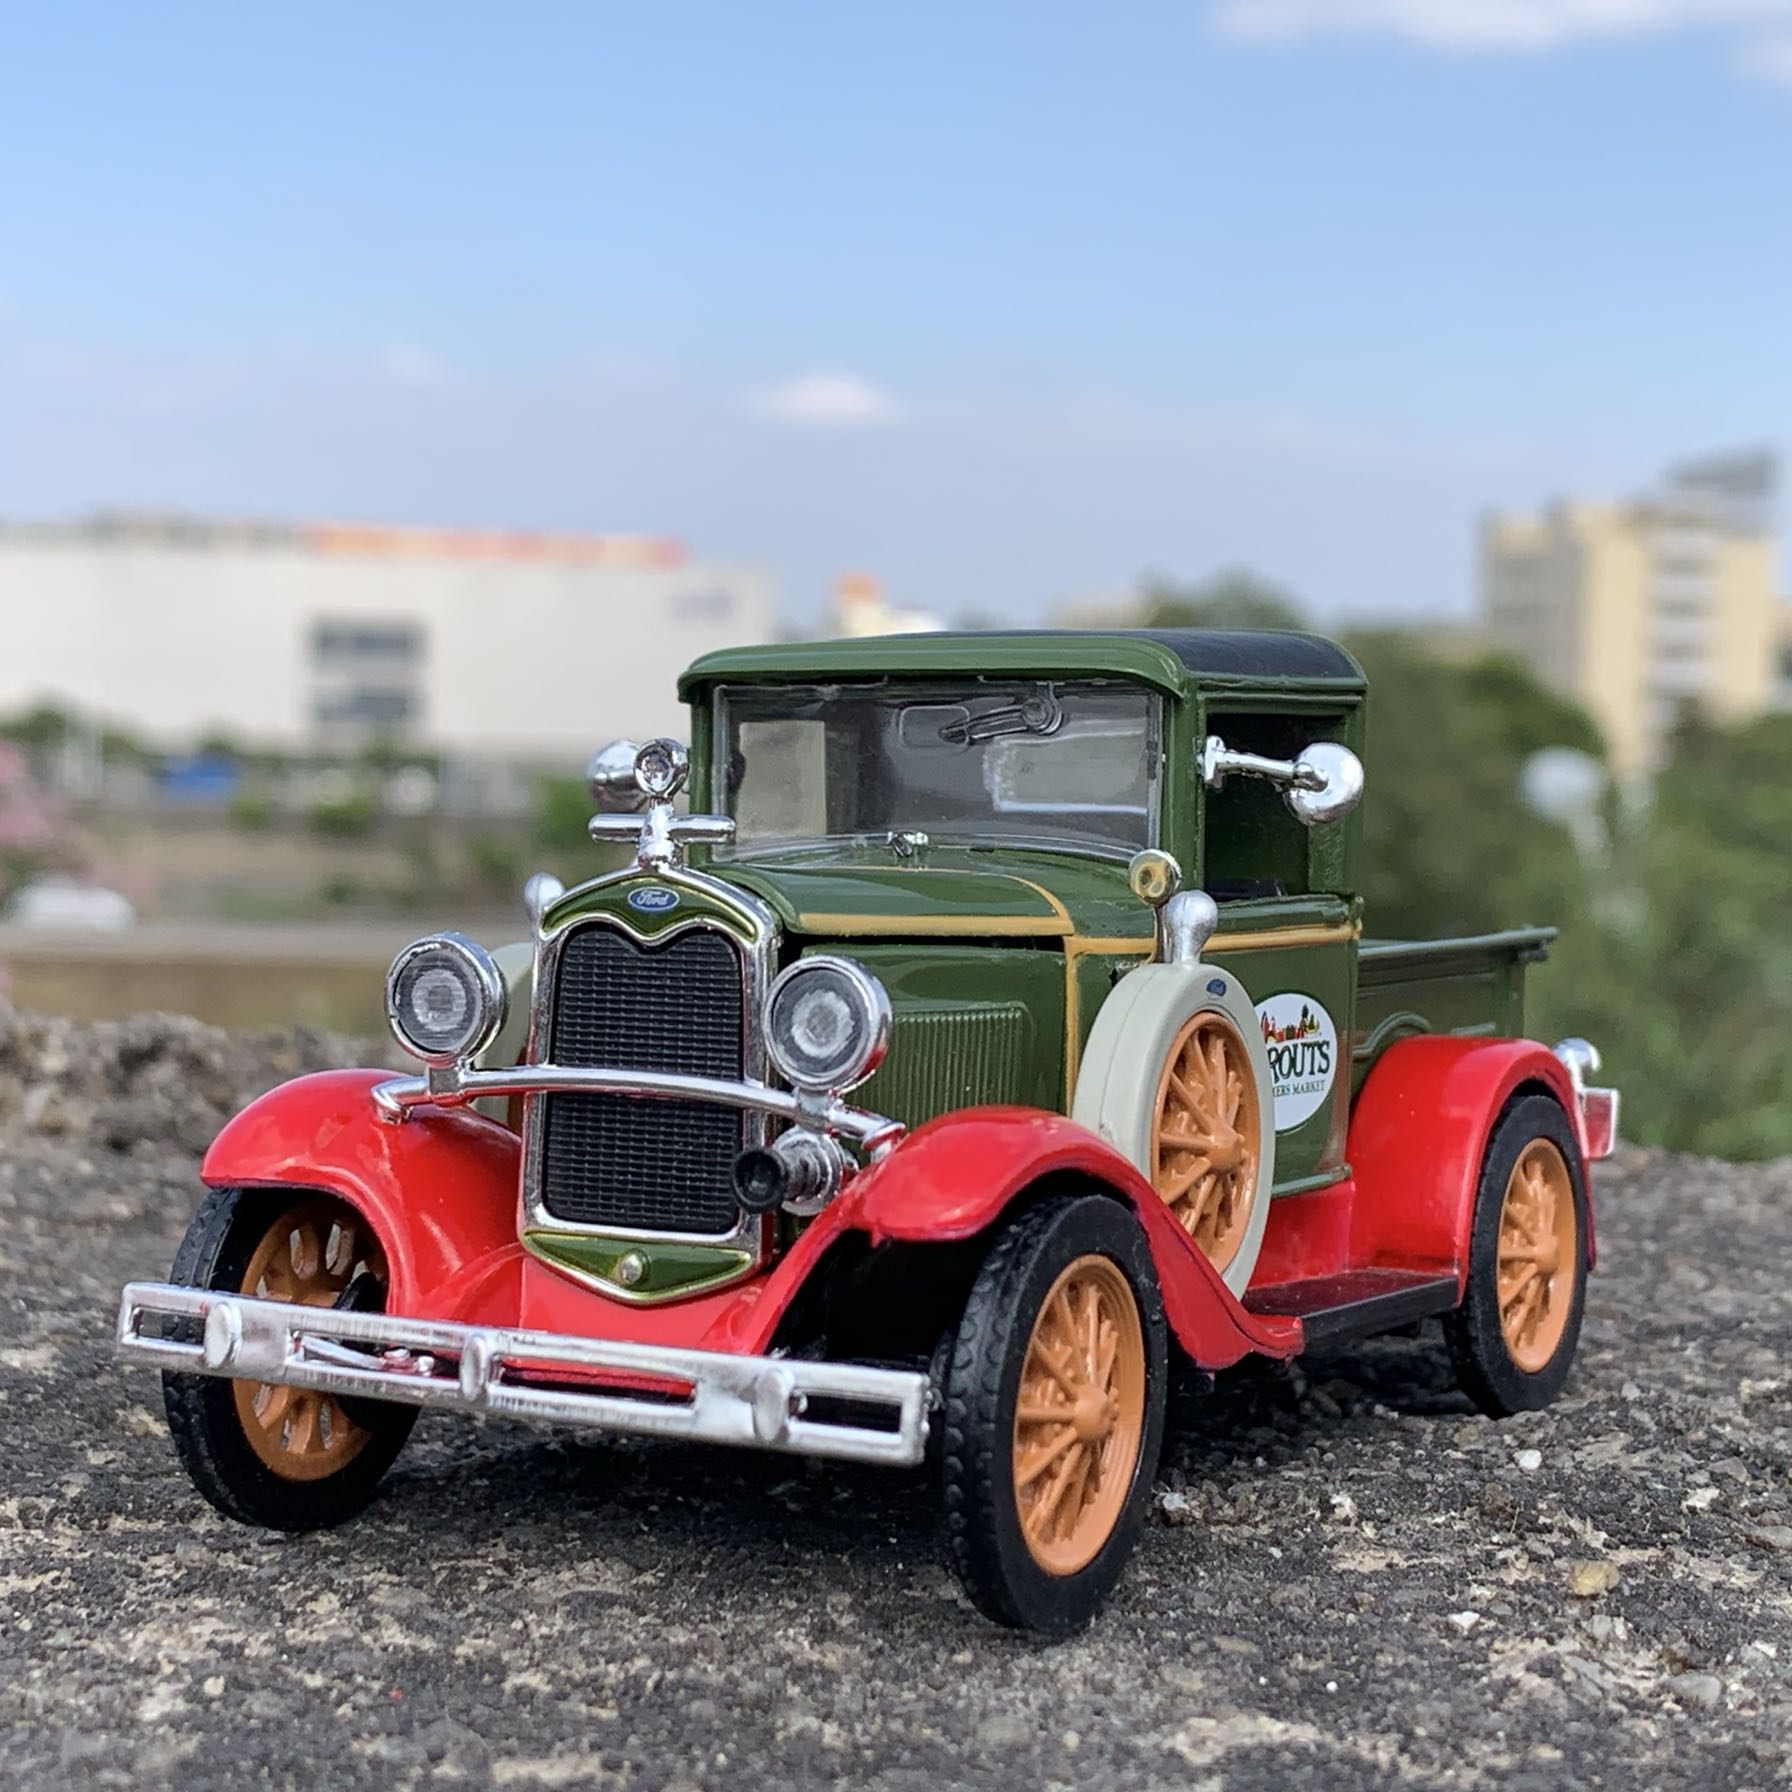 1/32 Alloy Classic Van Model Car For Ford Collection Decoration Length 13cm